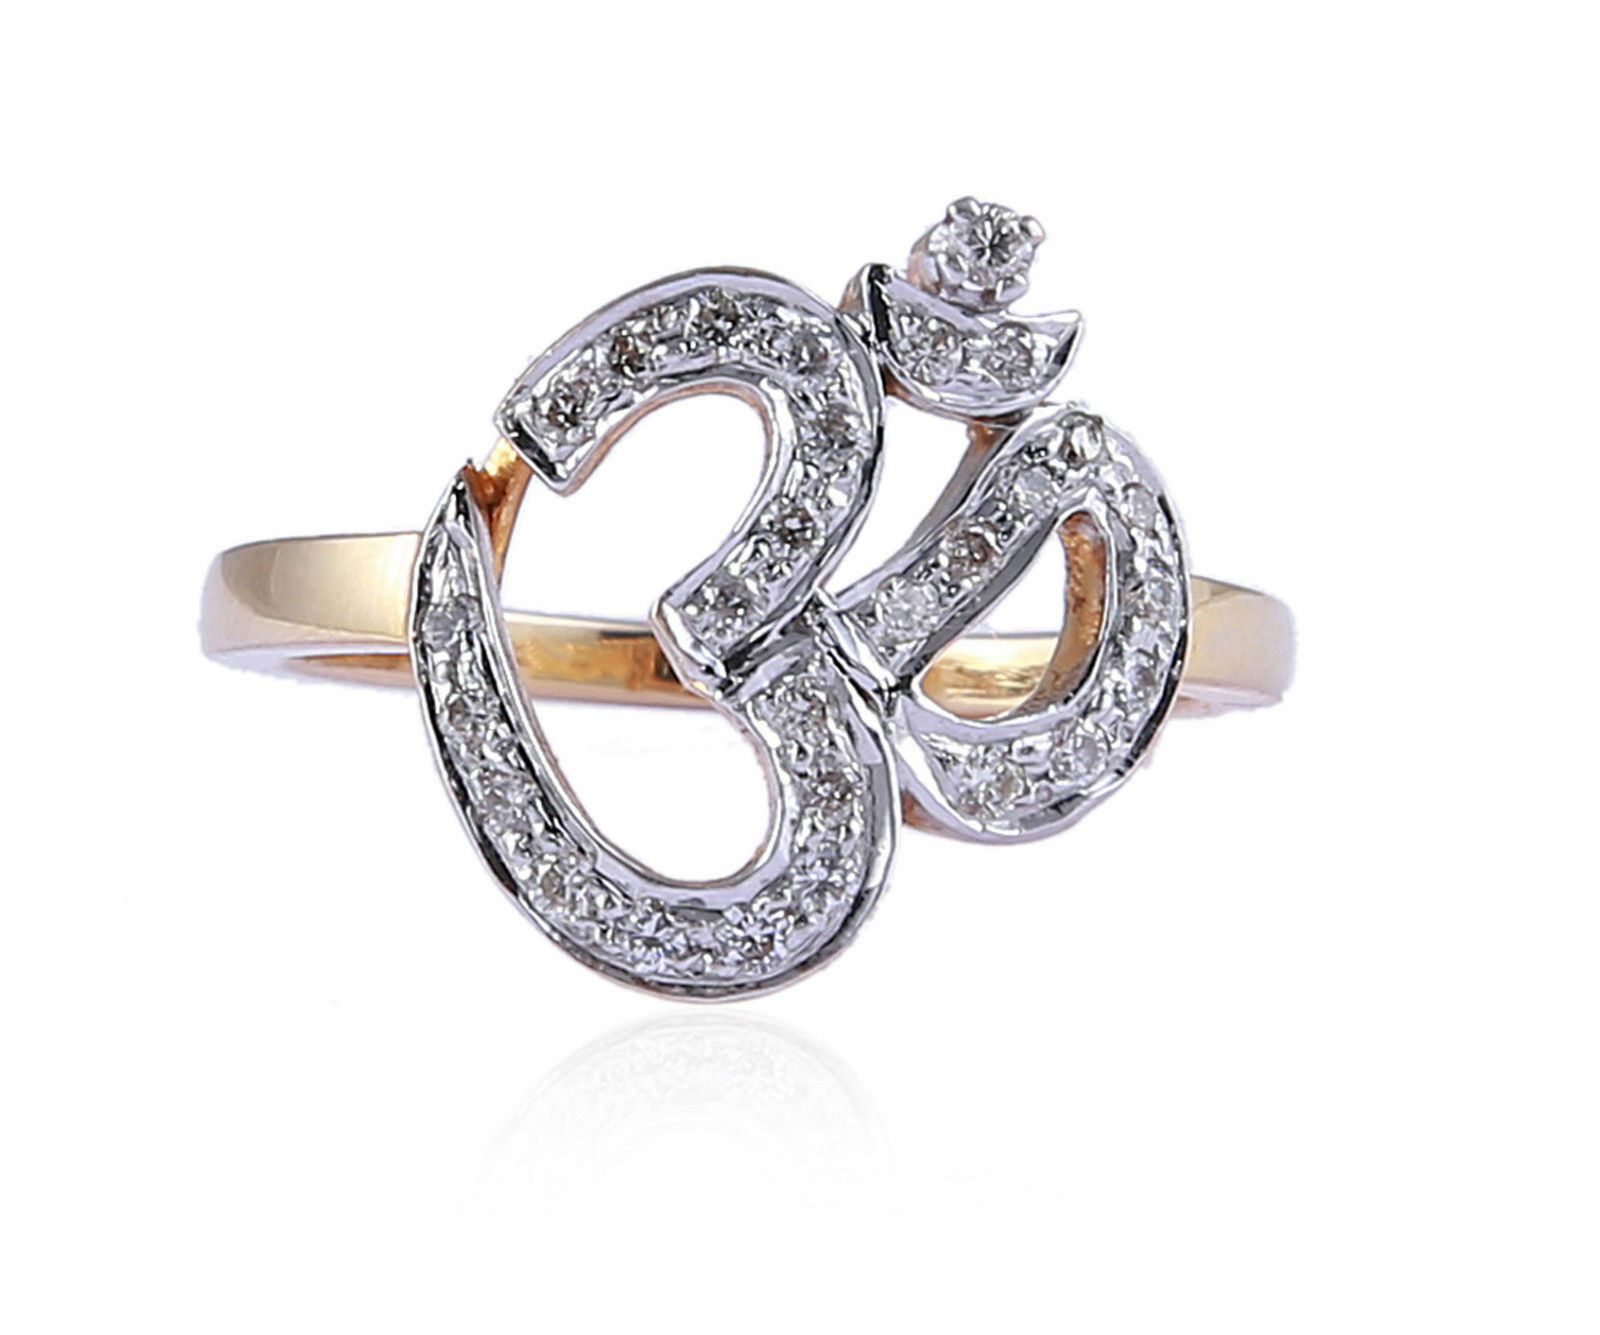 Pave 0.40 Cts Round Brilliant Cut Natural Diamonds  OM  Ring In Fine 18K gold